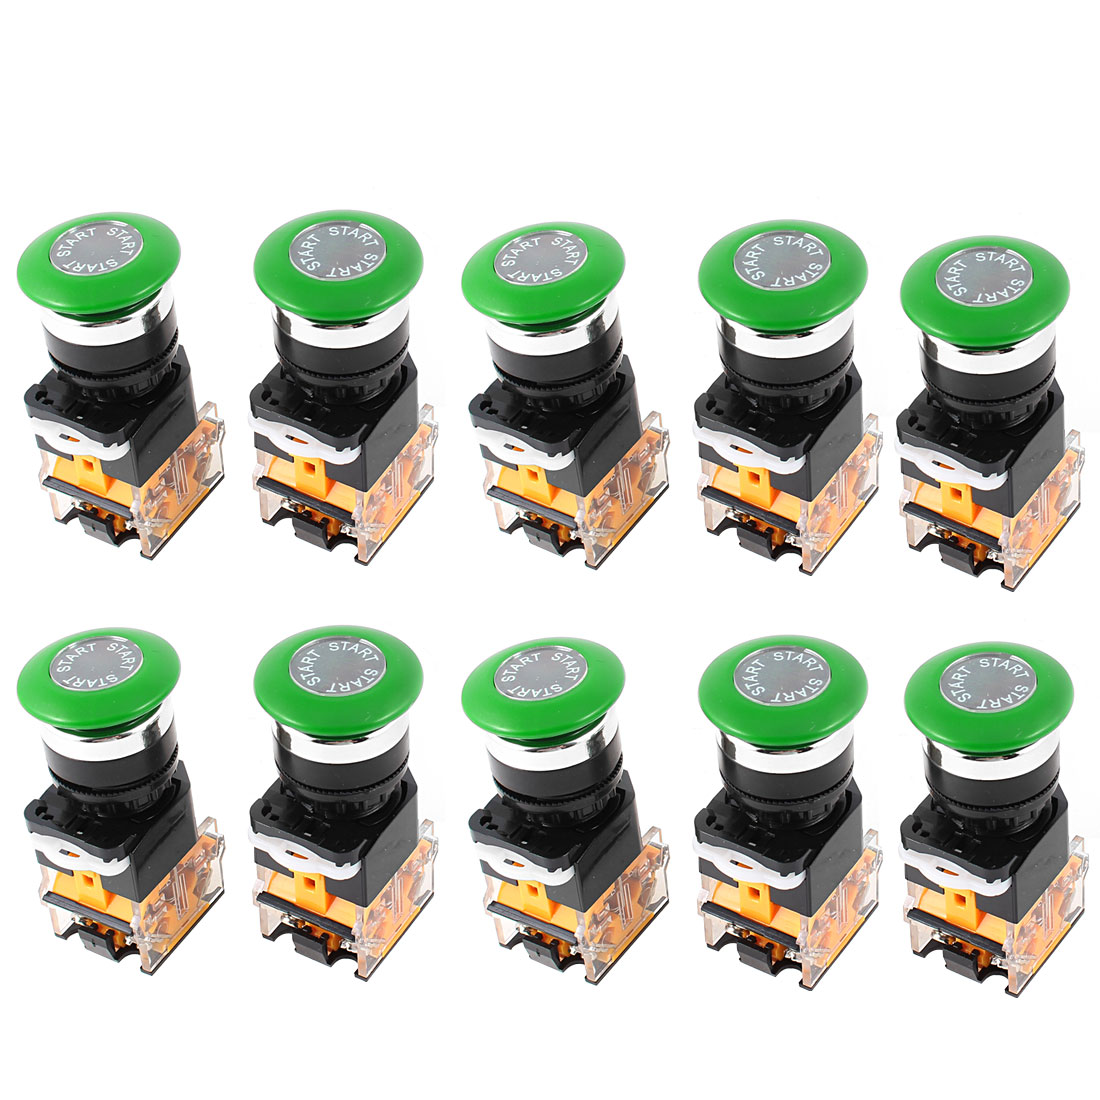 AC 660V 10A DPST Green Mushroom Cap 4 Screw Terminal Emergency Stop Switch 10Pcs